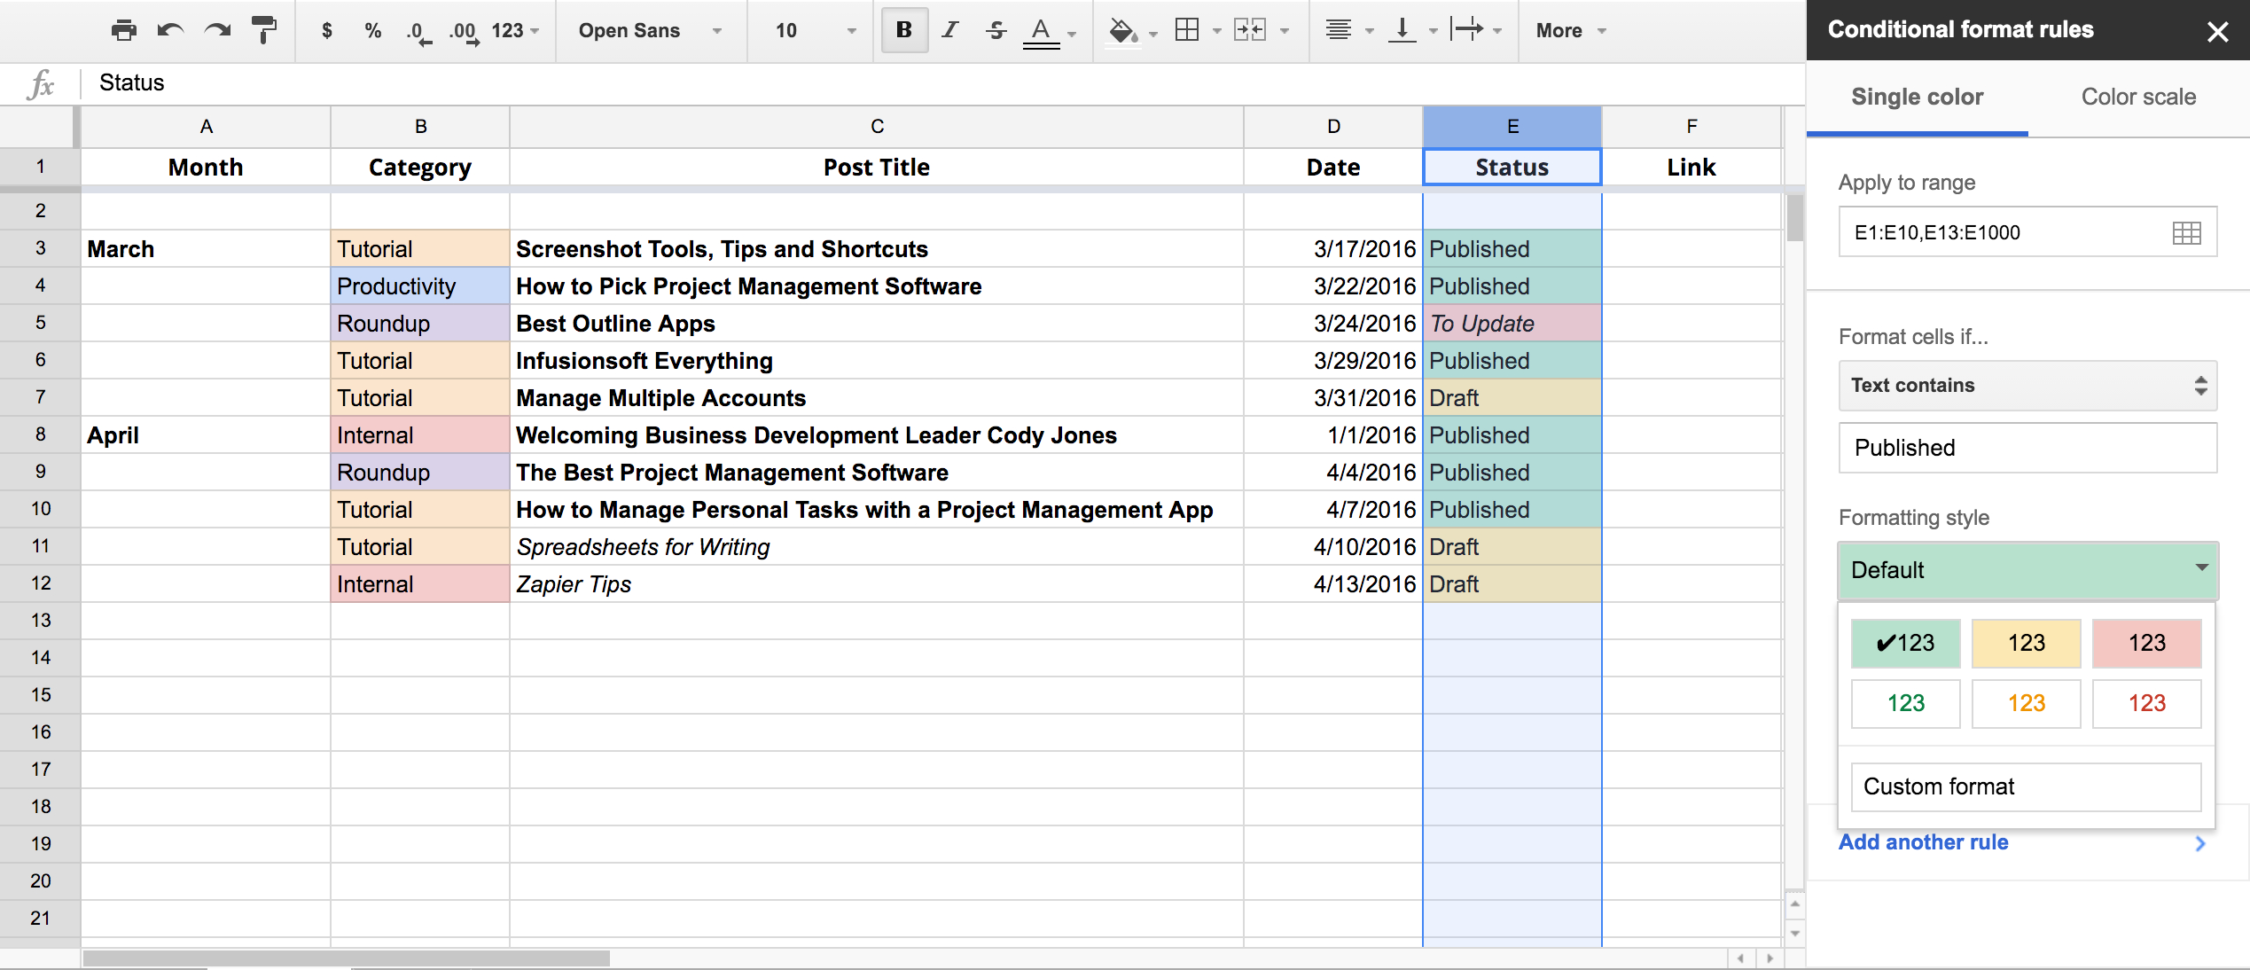 3 jobs that use spreadsheets jobs that use excel spreadsheets jobs that use spreadsheets list of jobs that use spreadsheets  Jobs That Use Spreadsheets Inside Write Faster With Spreadsheets: 10 Shortcuts For Composing Outlines Jobs That Use Spreadsheets Google Spreadshee